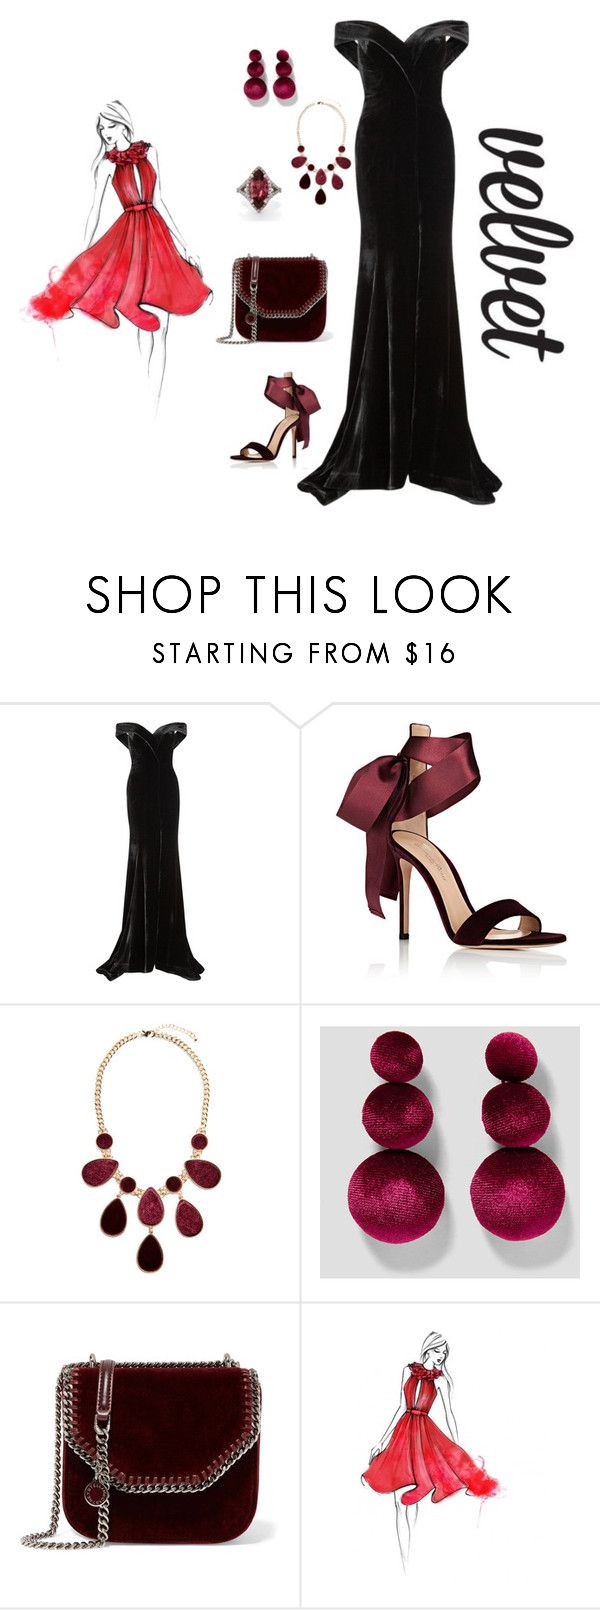 """velvet"" by things-fo4-your-head ❤ liked on Polyvore featuring Rachel Gilbert, Gianvito Rossi, GUESS by Marciano and STELLA McCARTNEY"